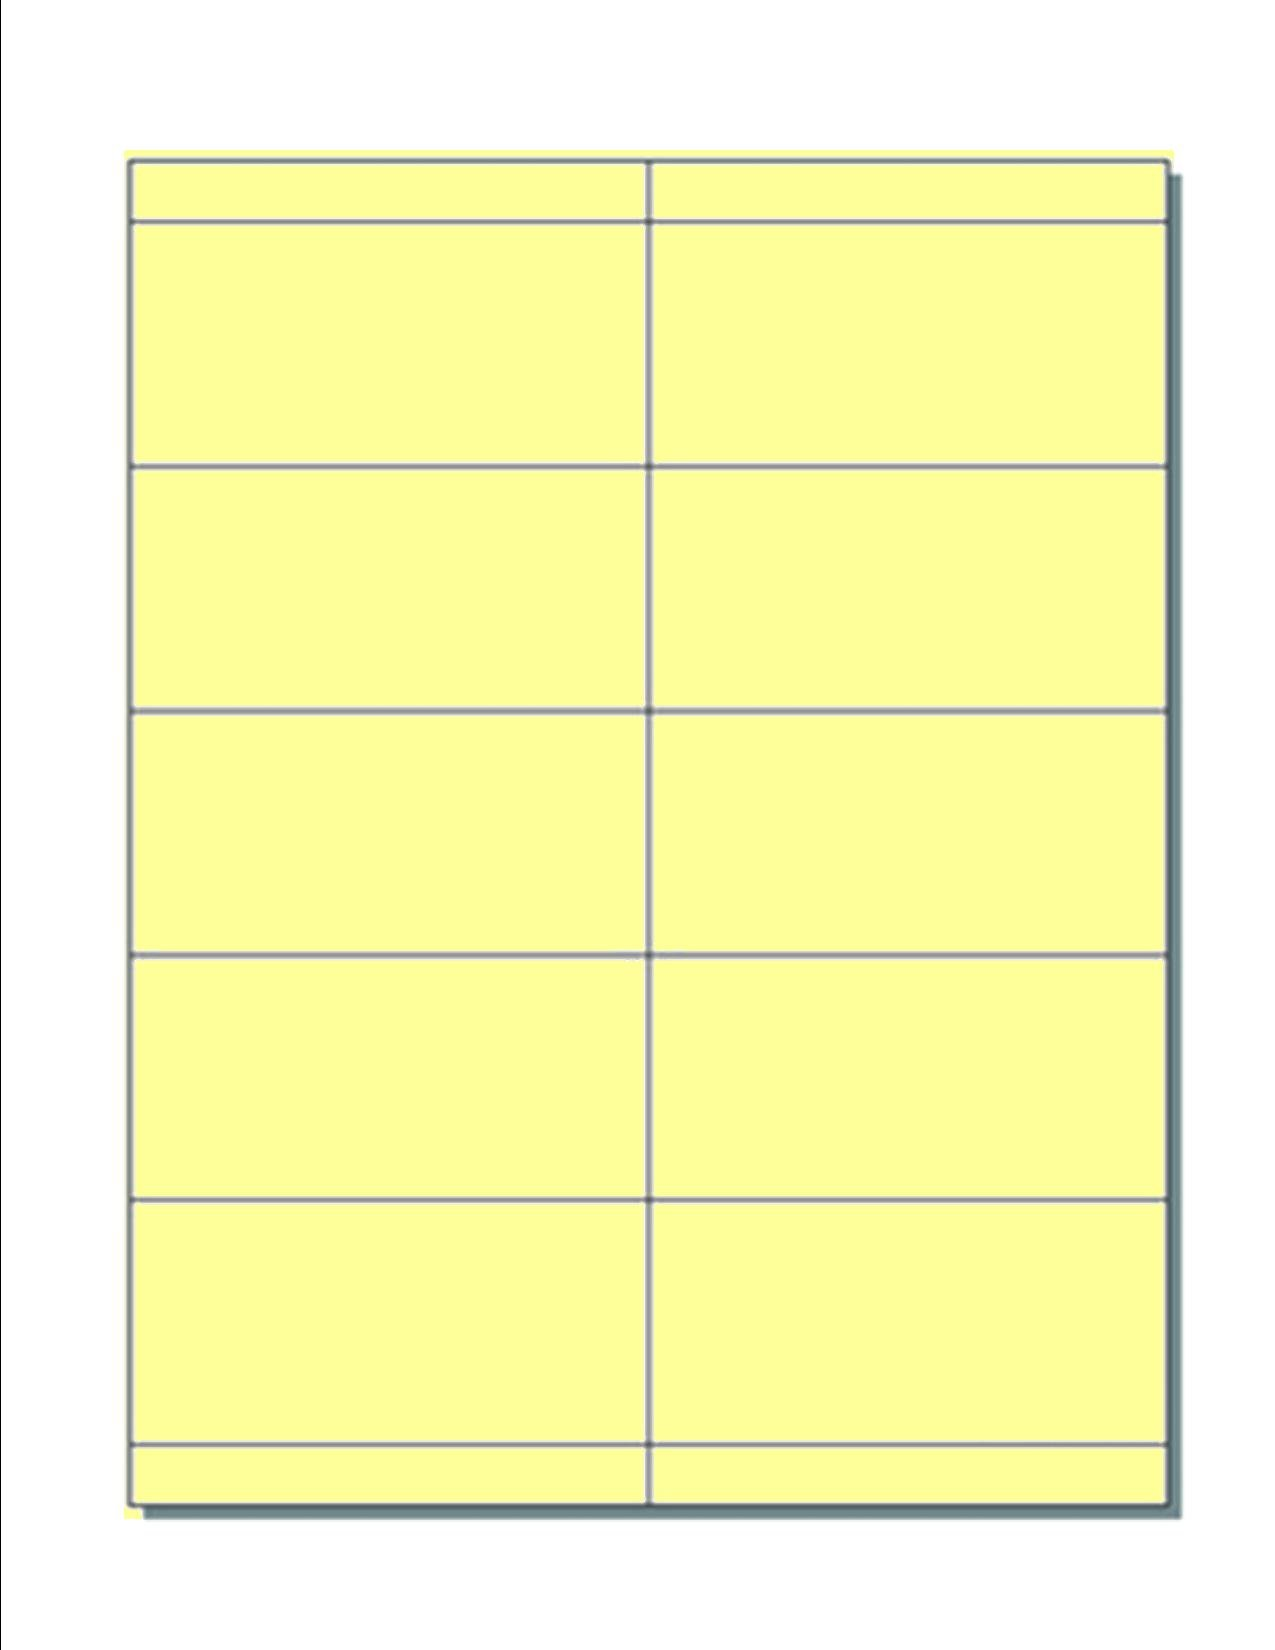 Blank Name Badge Inserts, Print-Ready on 8.5'' x 11'', 67-lb Yellow Vellum, 10 Badges Per Sheet (4.25'' x 2.5'') - 250 Sheets by Zapco (Image #1)